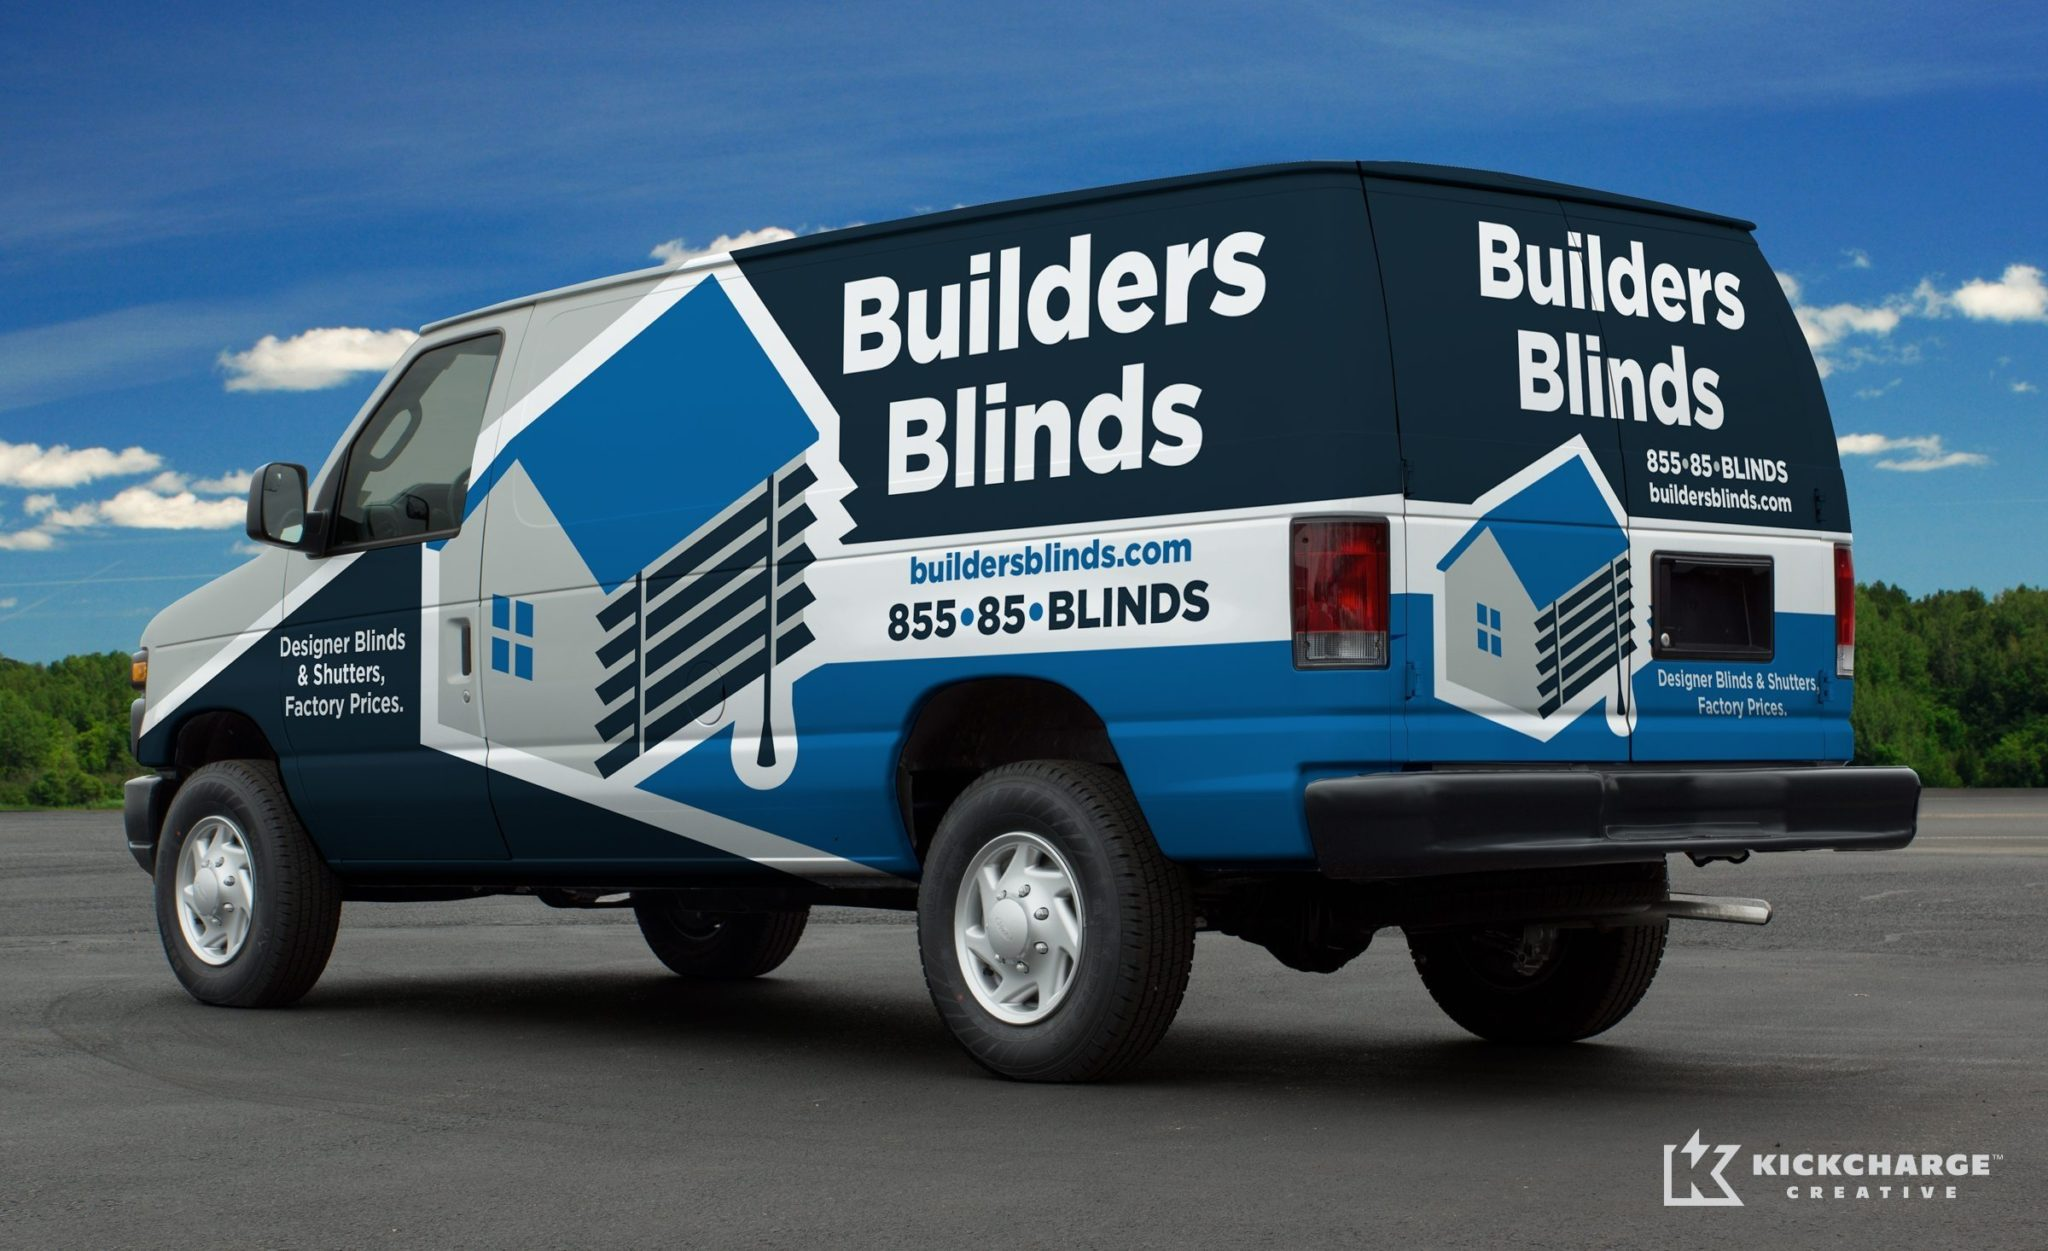 Vehicle design for Builders Blinds.